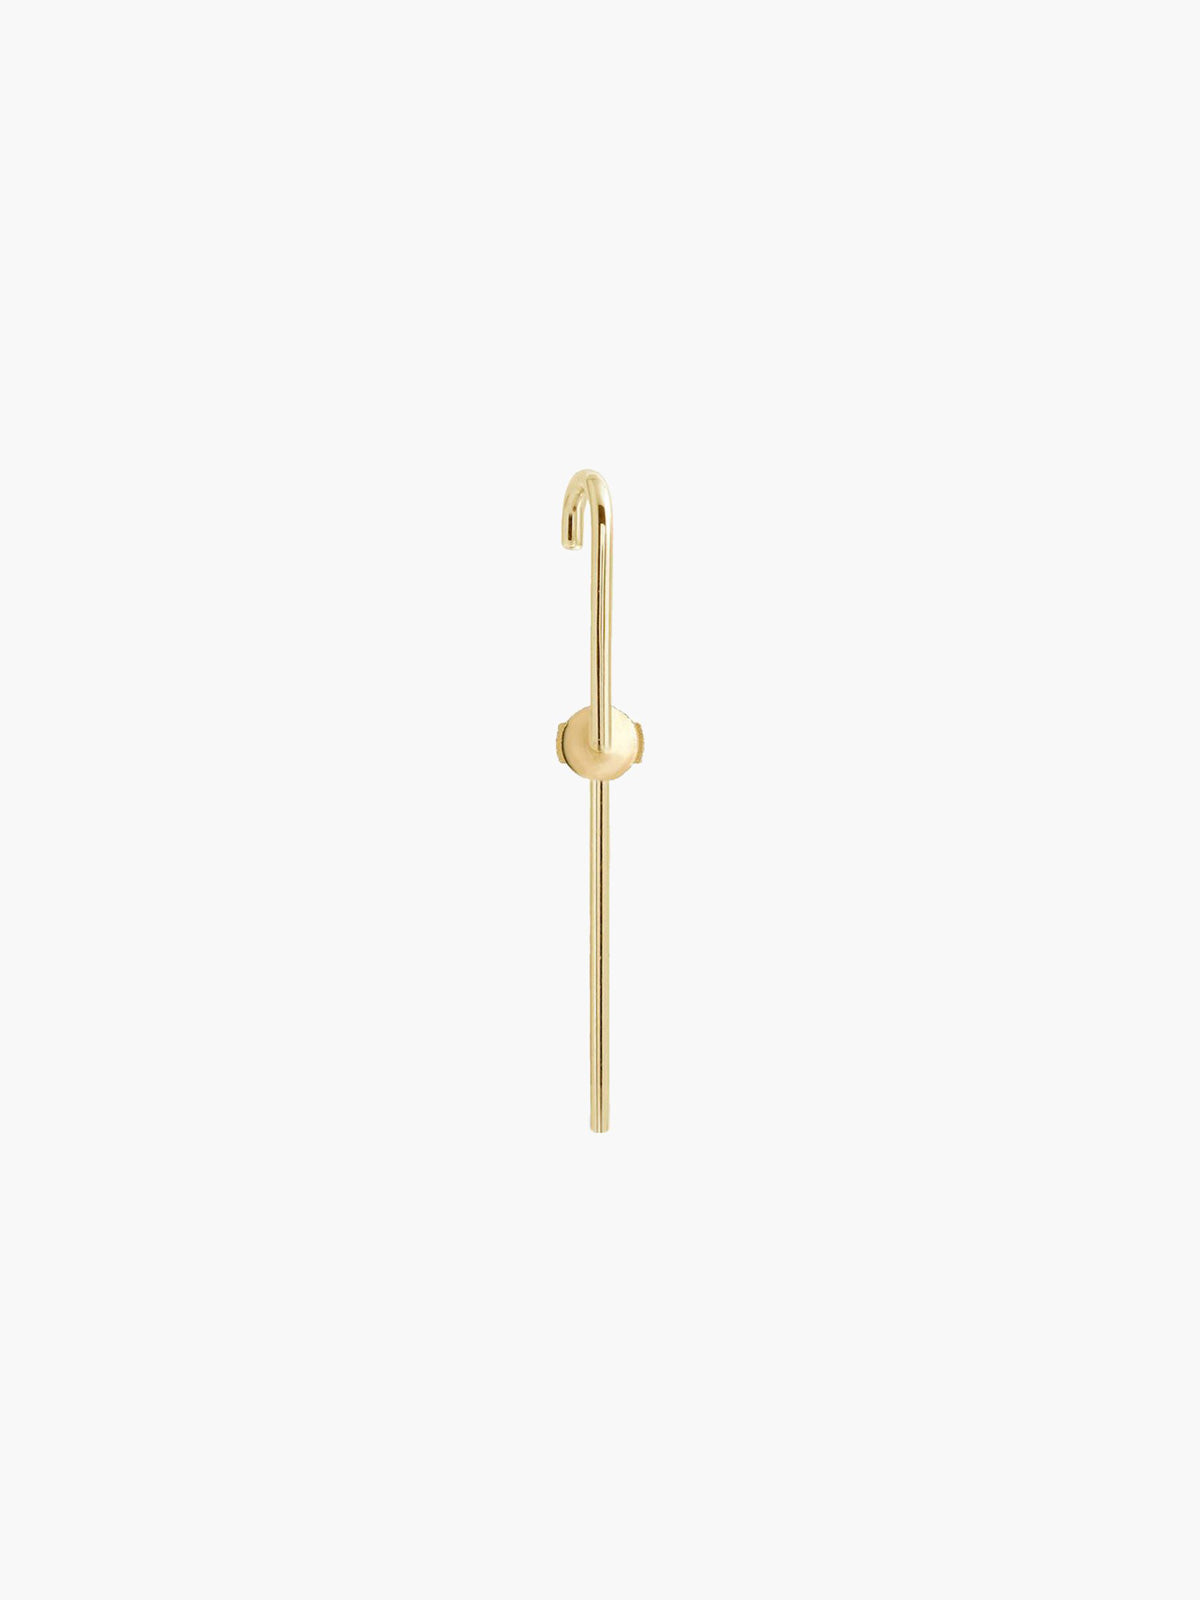 The Petite Ear Pin | 18K Yellow Gold The Petite Ear Pin | 18K Yellow Gold